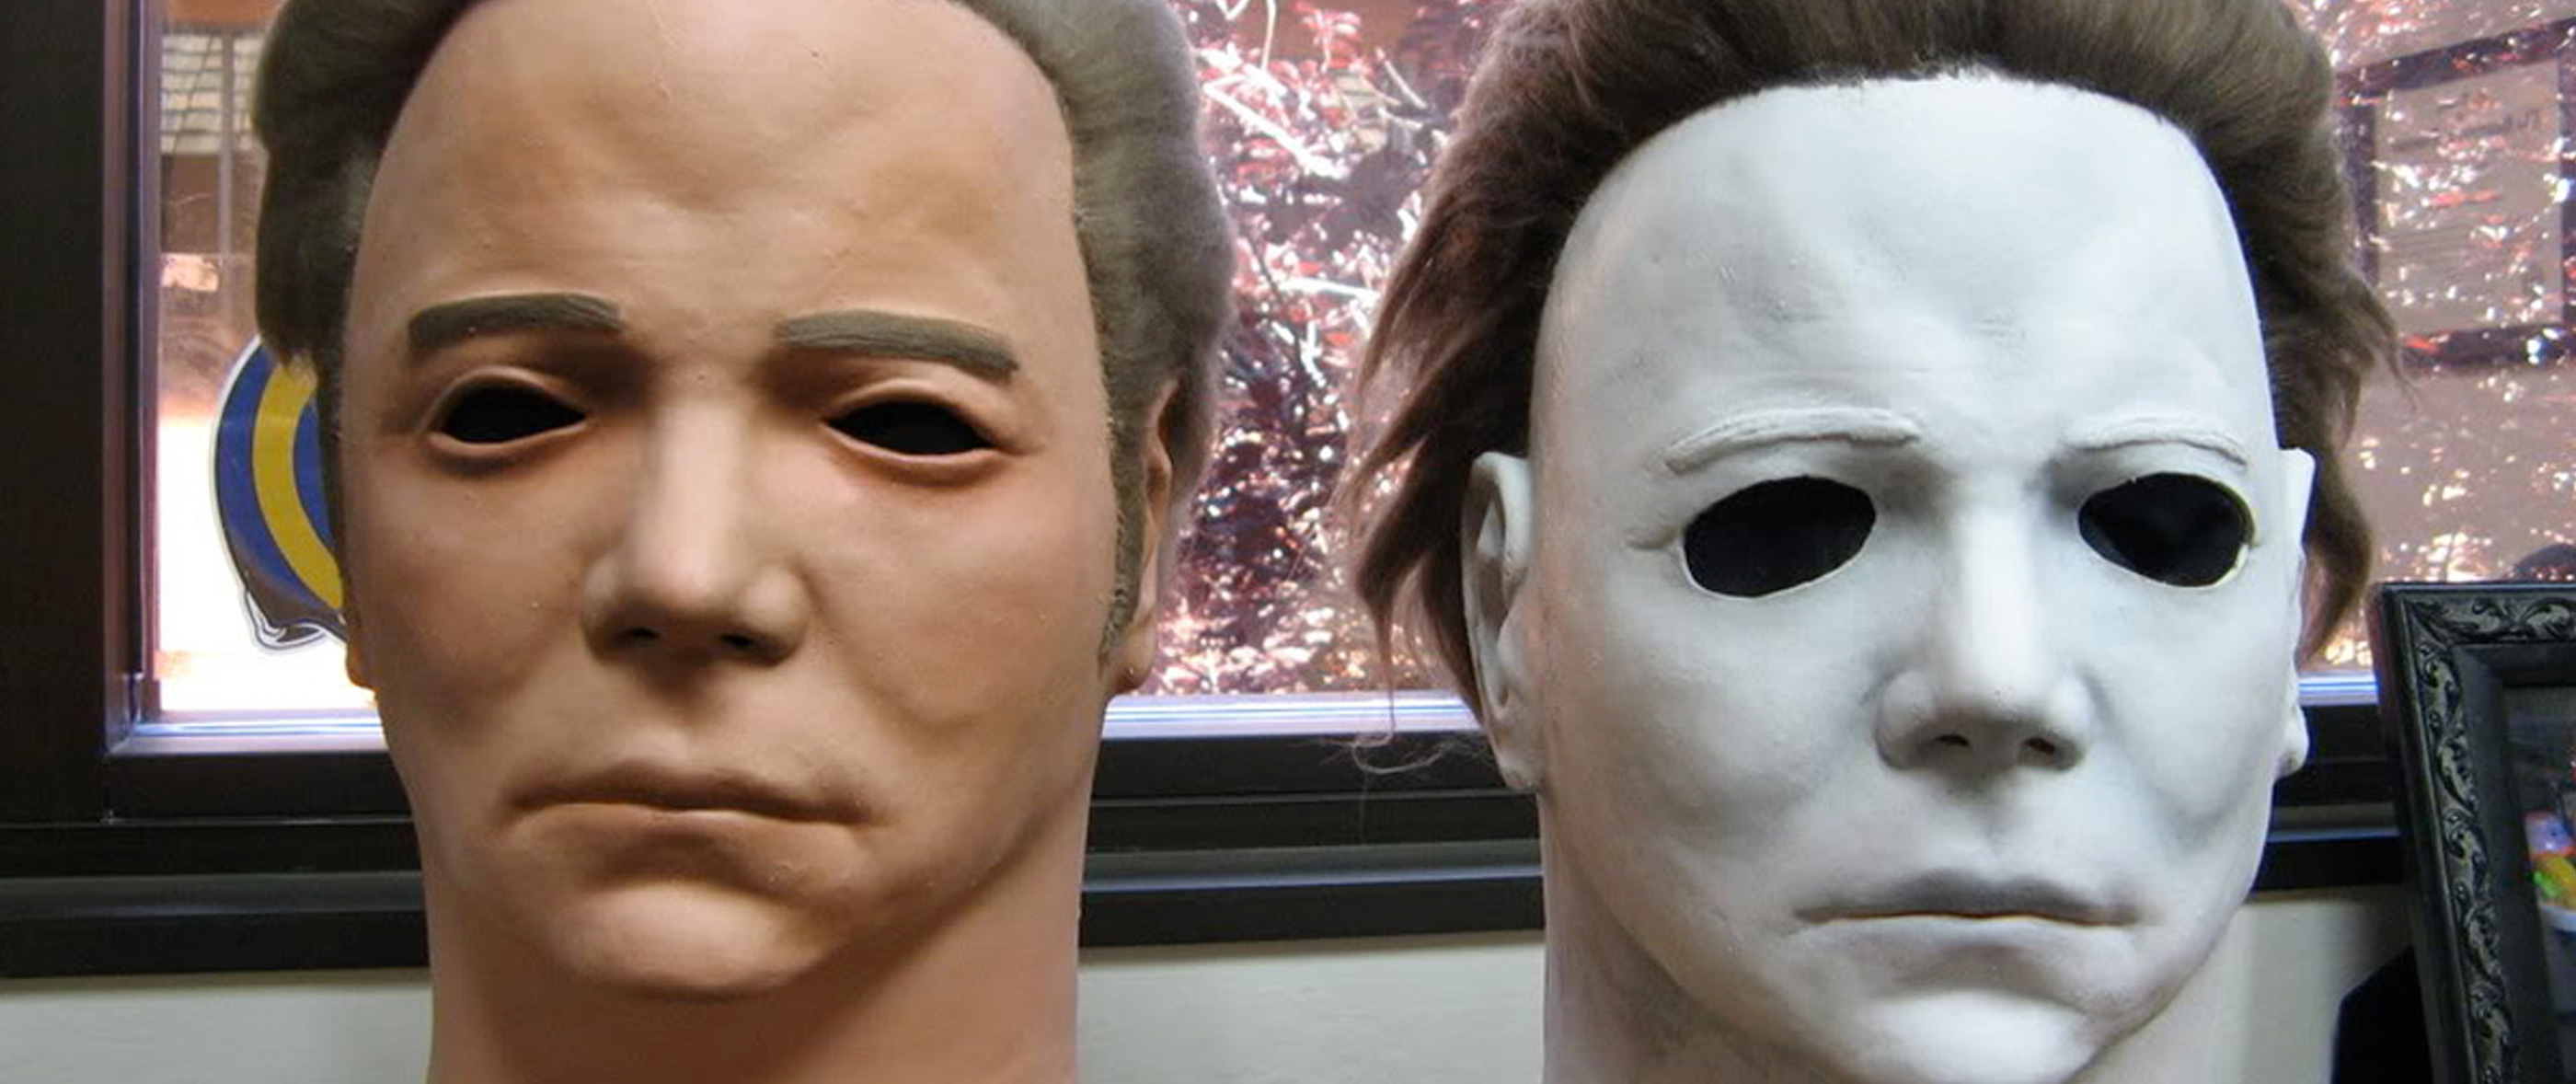 42 Disturbed Facts About Halloween's Michael Myers, The